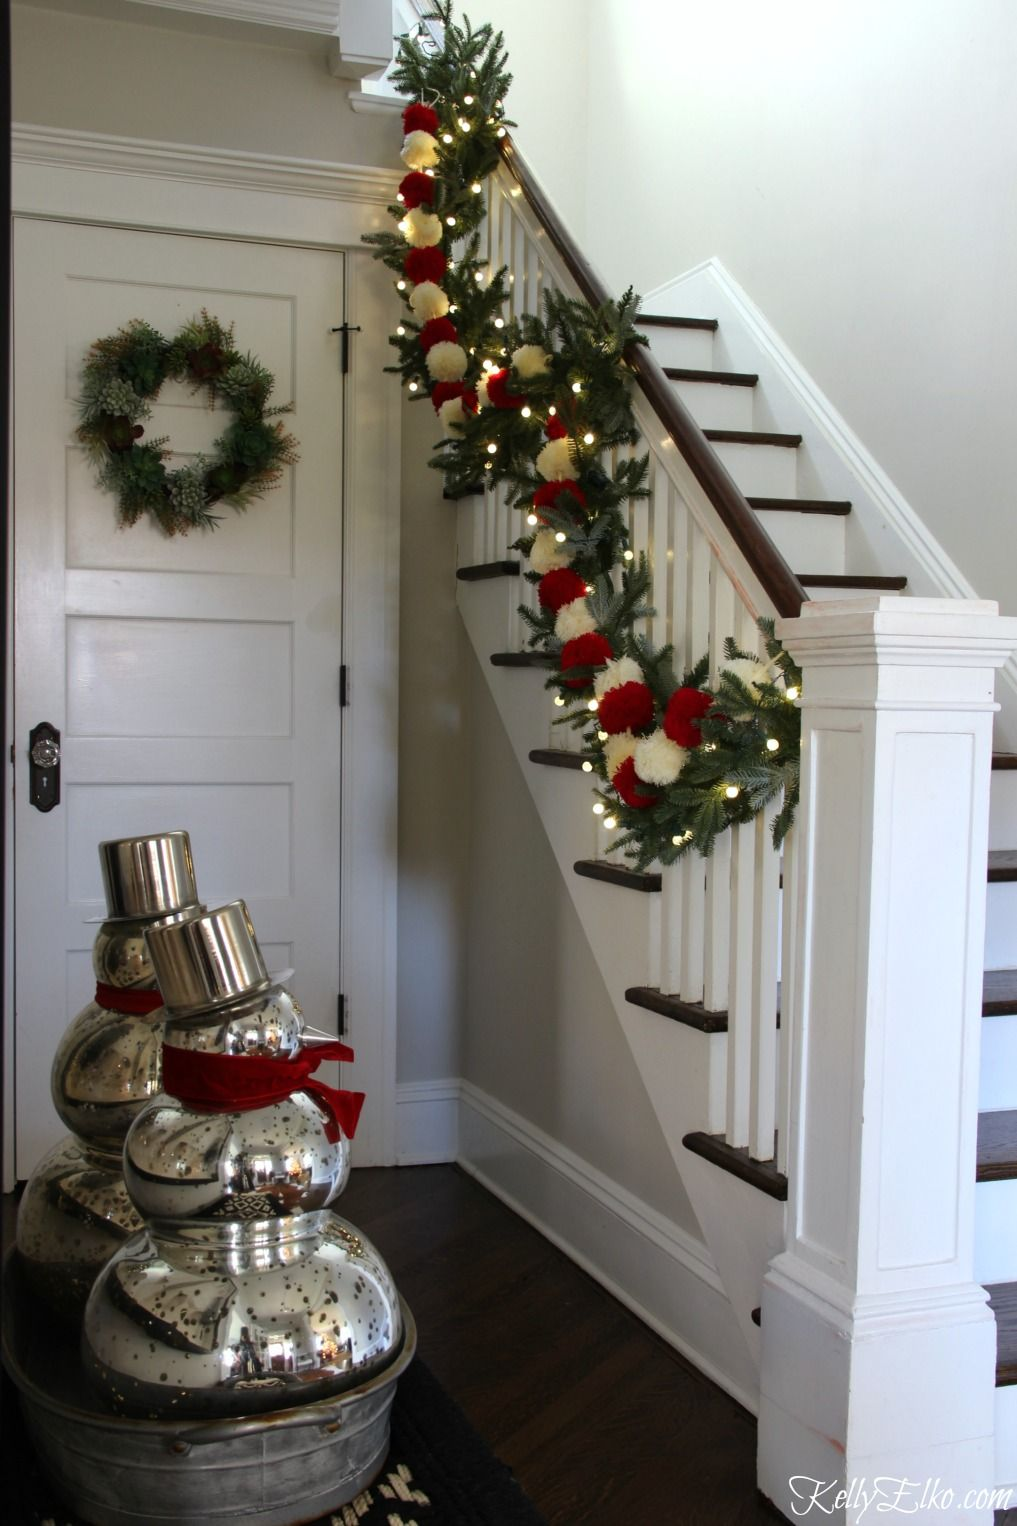 Marvelous Christmas Home Tour   Love This Foyer With Beautiful Garland And Mercury  Glass Snowmen From HomeGoods Home Design Ideas